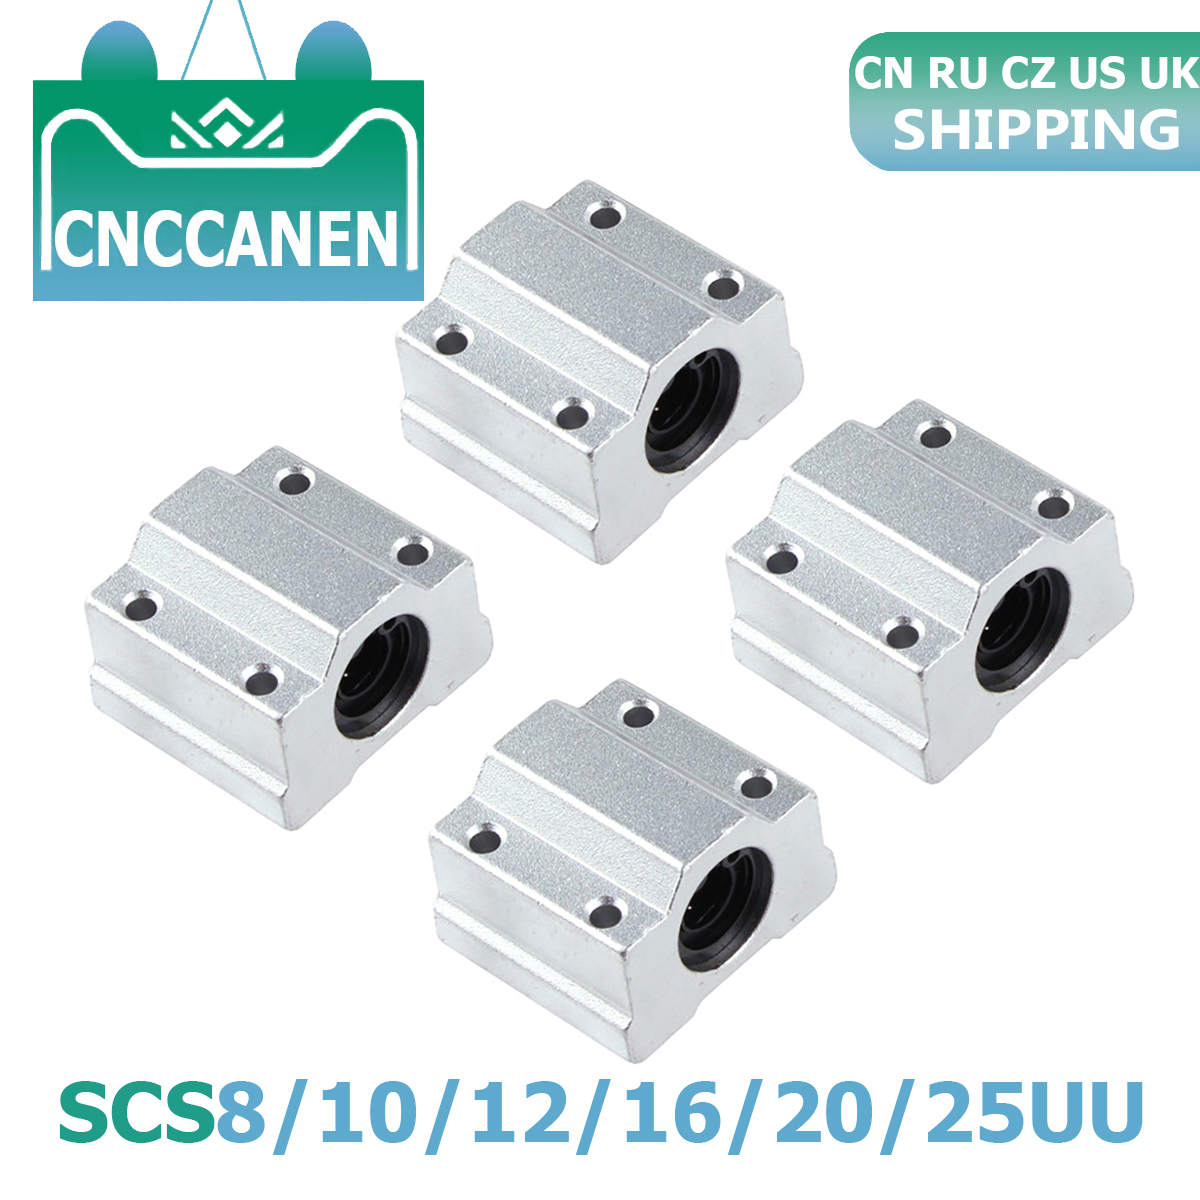 4PCS Linear Motion Ball Bearing Slide Block Bushing SC8UU SCS8UU SC10UU SCS12UU 16UU 20UU 25UU Linear Shaft CNC 3D Printer Parts